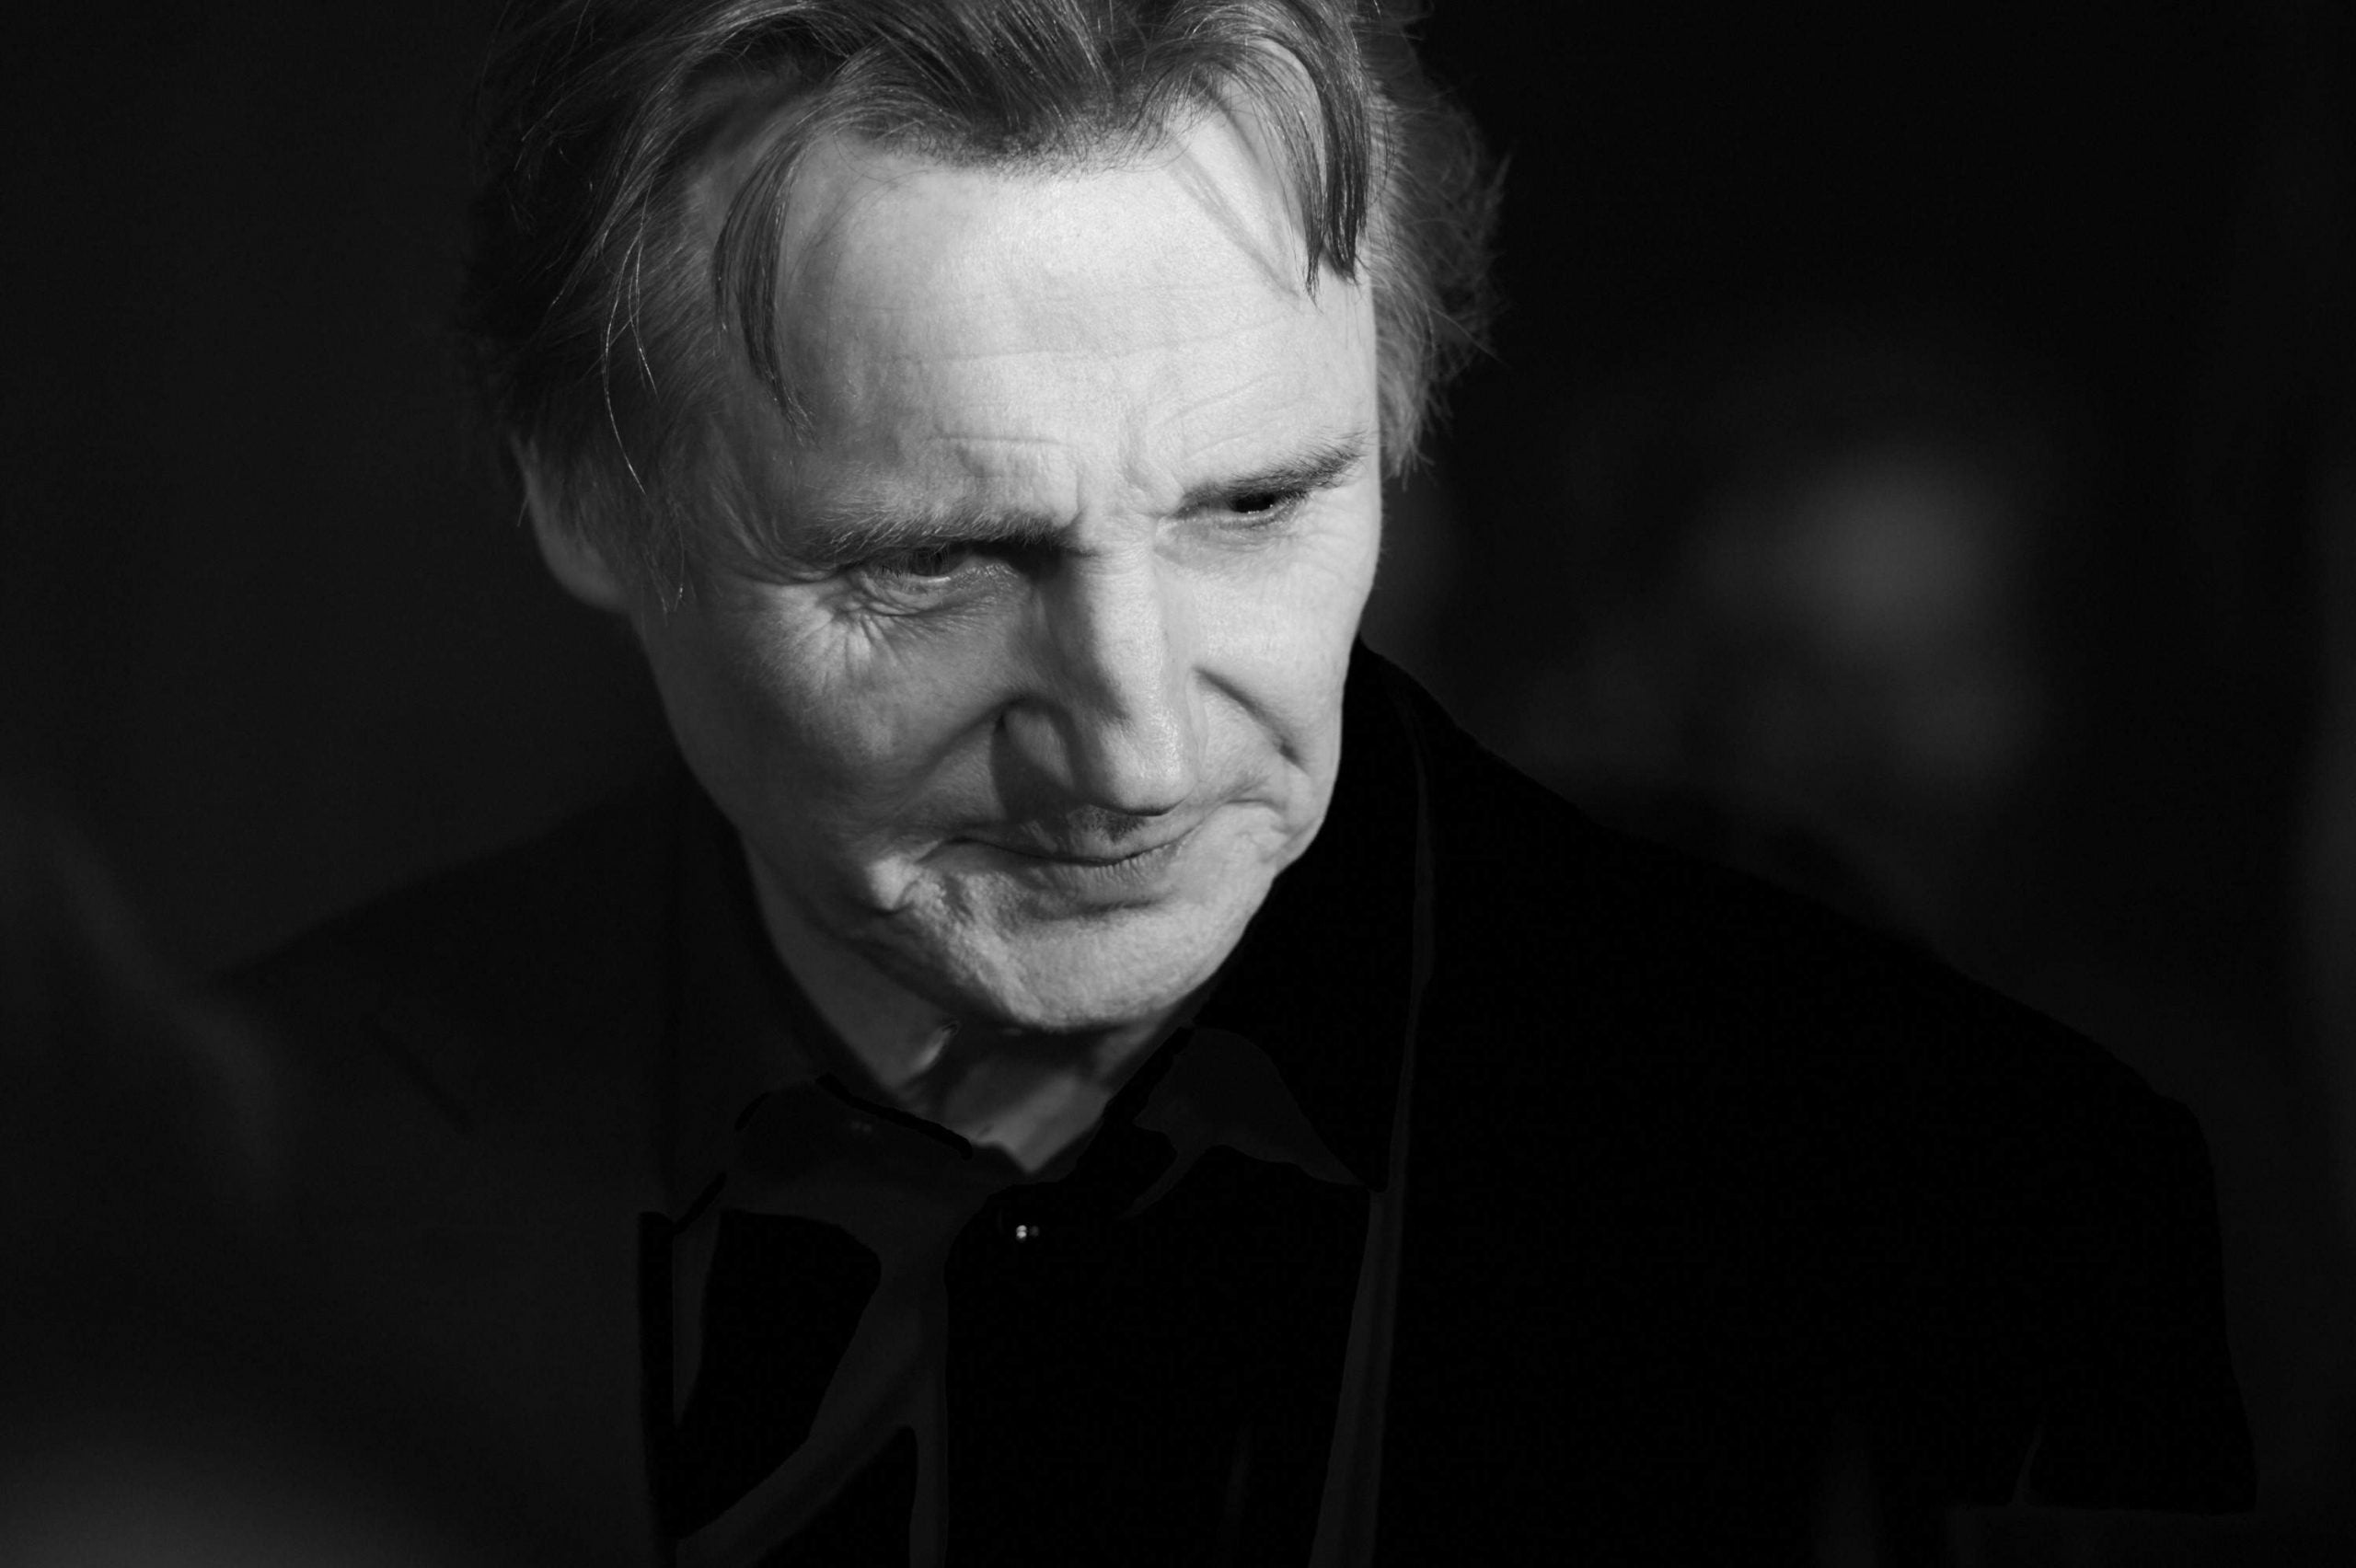 """""""My imagination was very vivid"""": the bewitching sound of Liam Neeson's voice"""